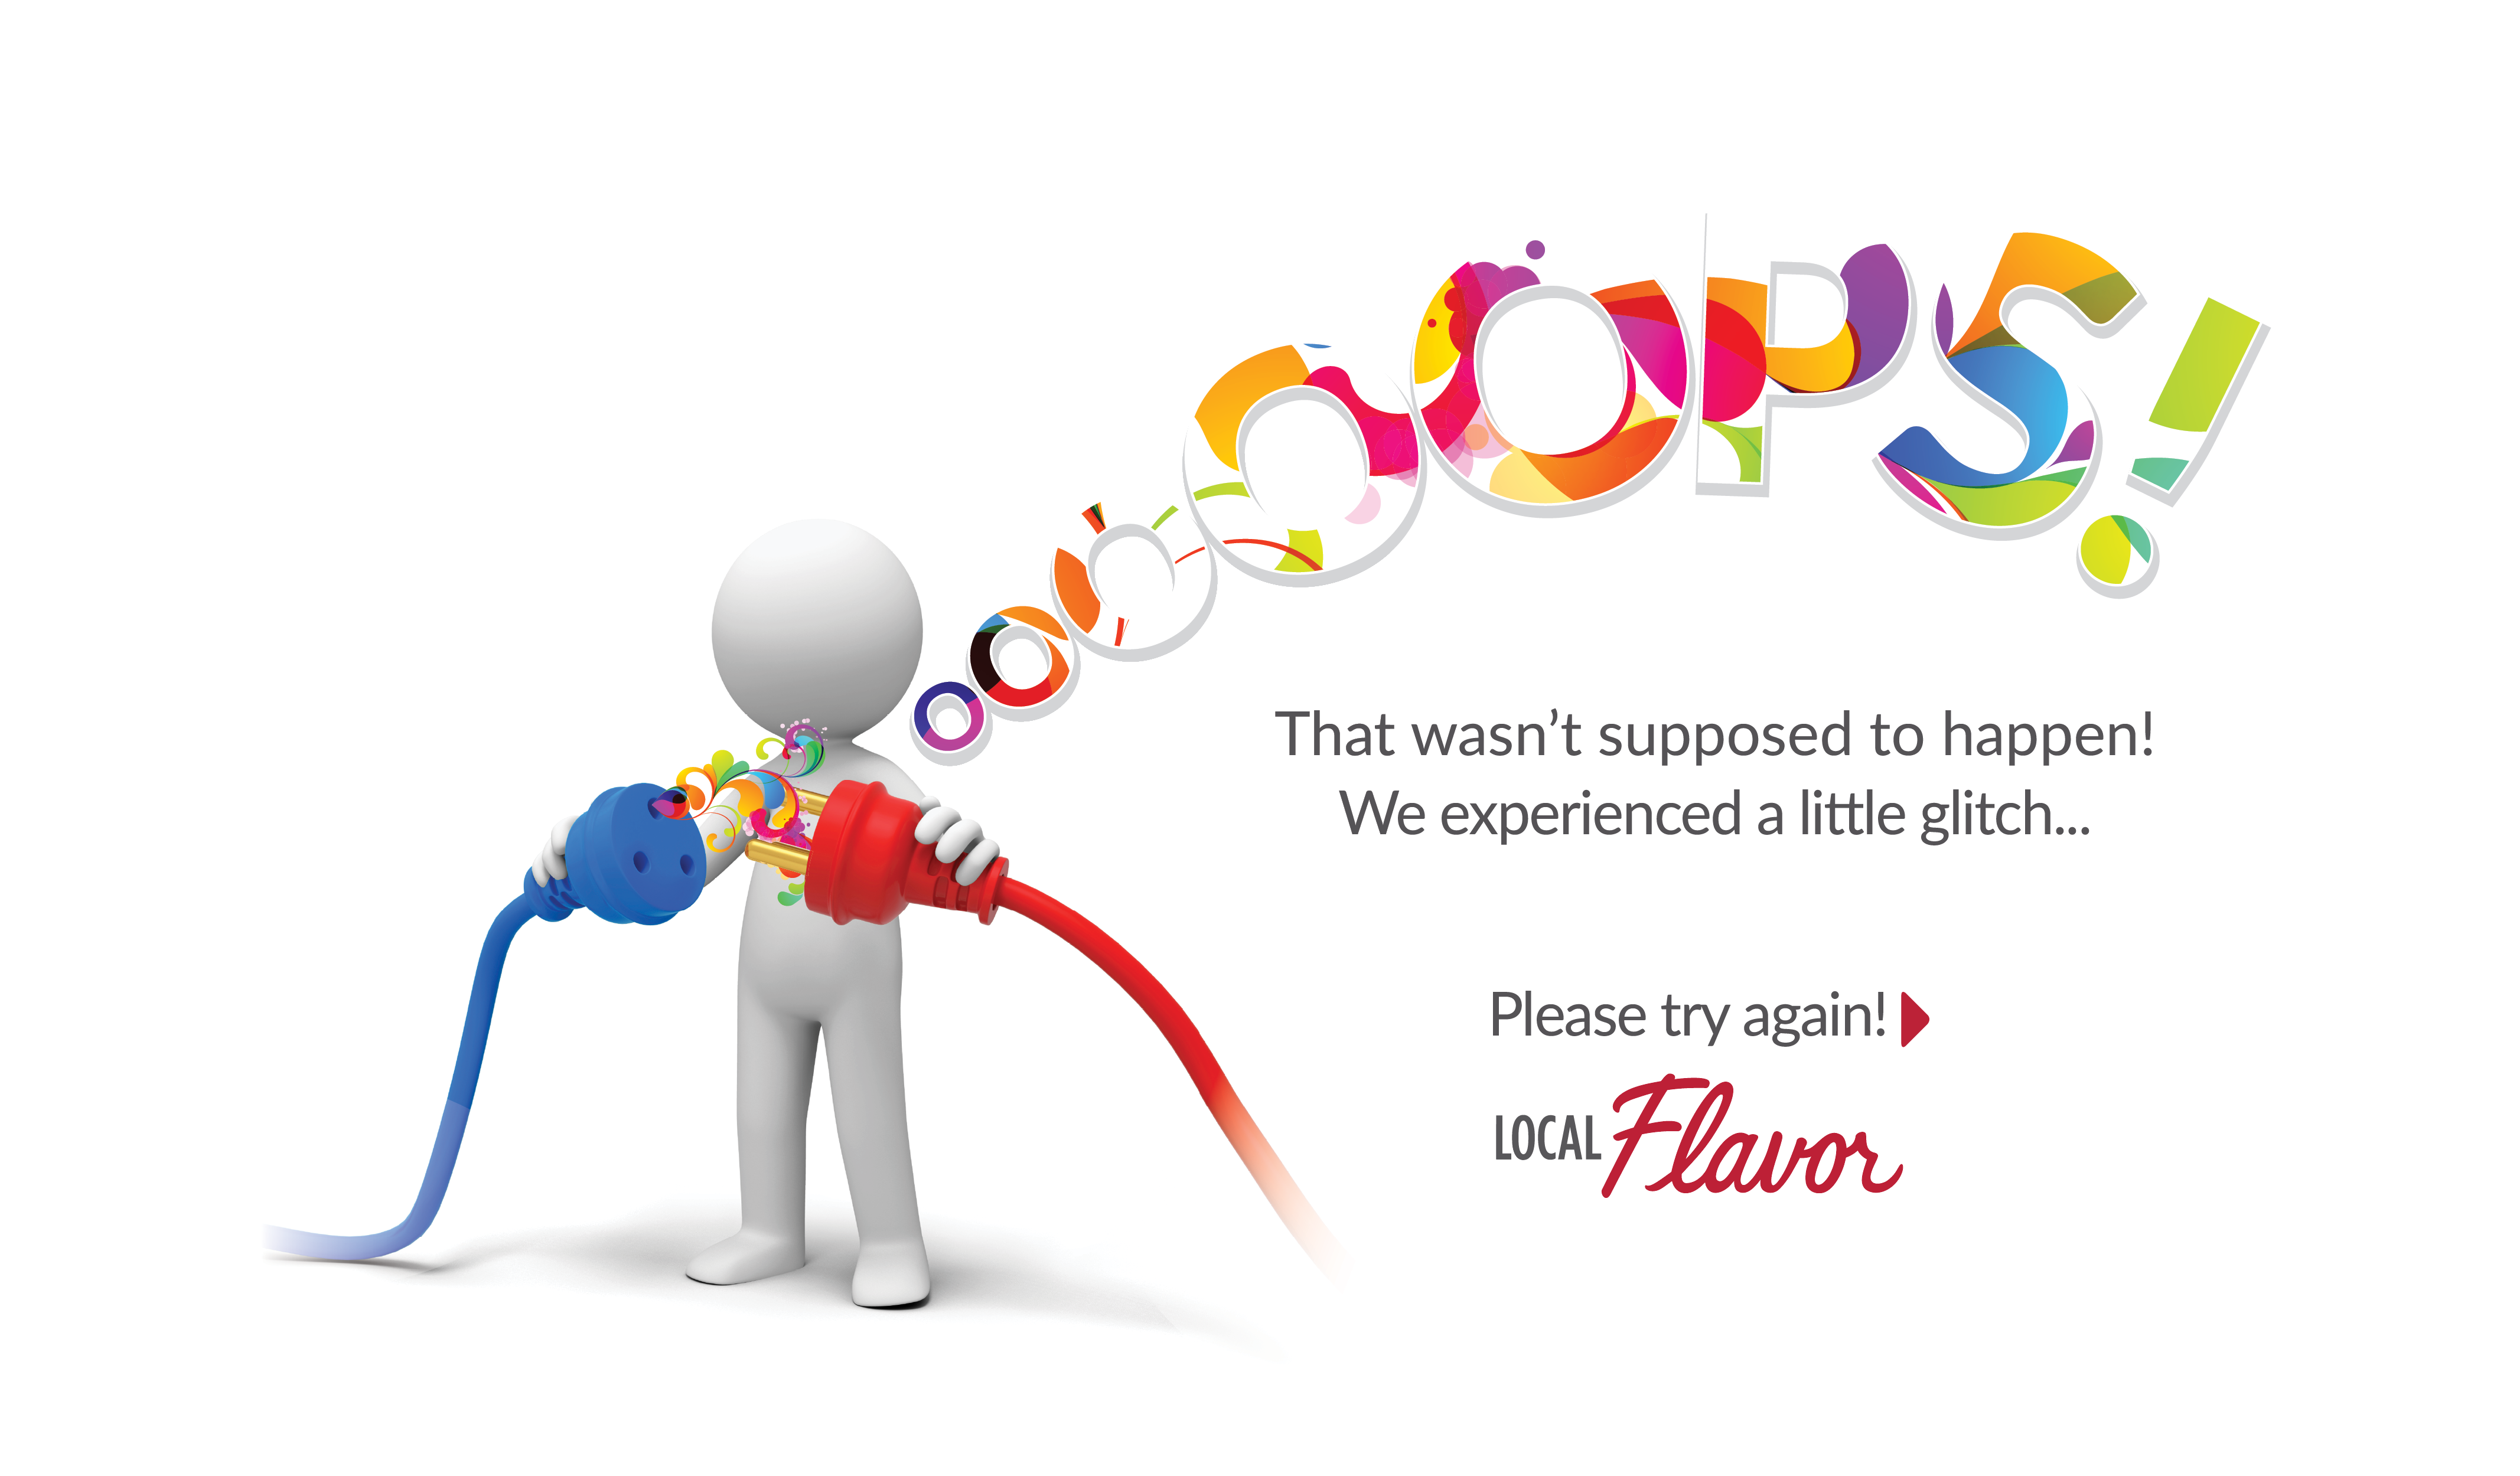 Ooops.  That wasn't supposed to happen!  We experiences a little glitch.  Please try again!